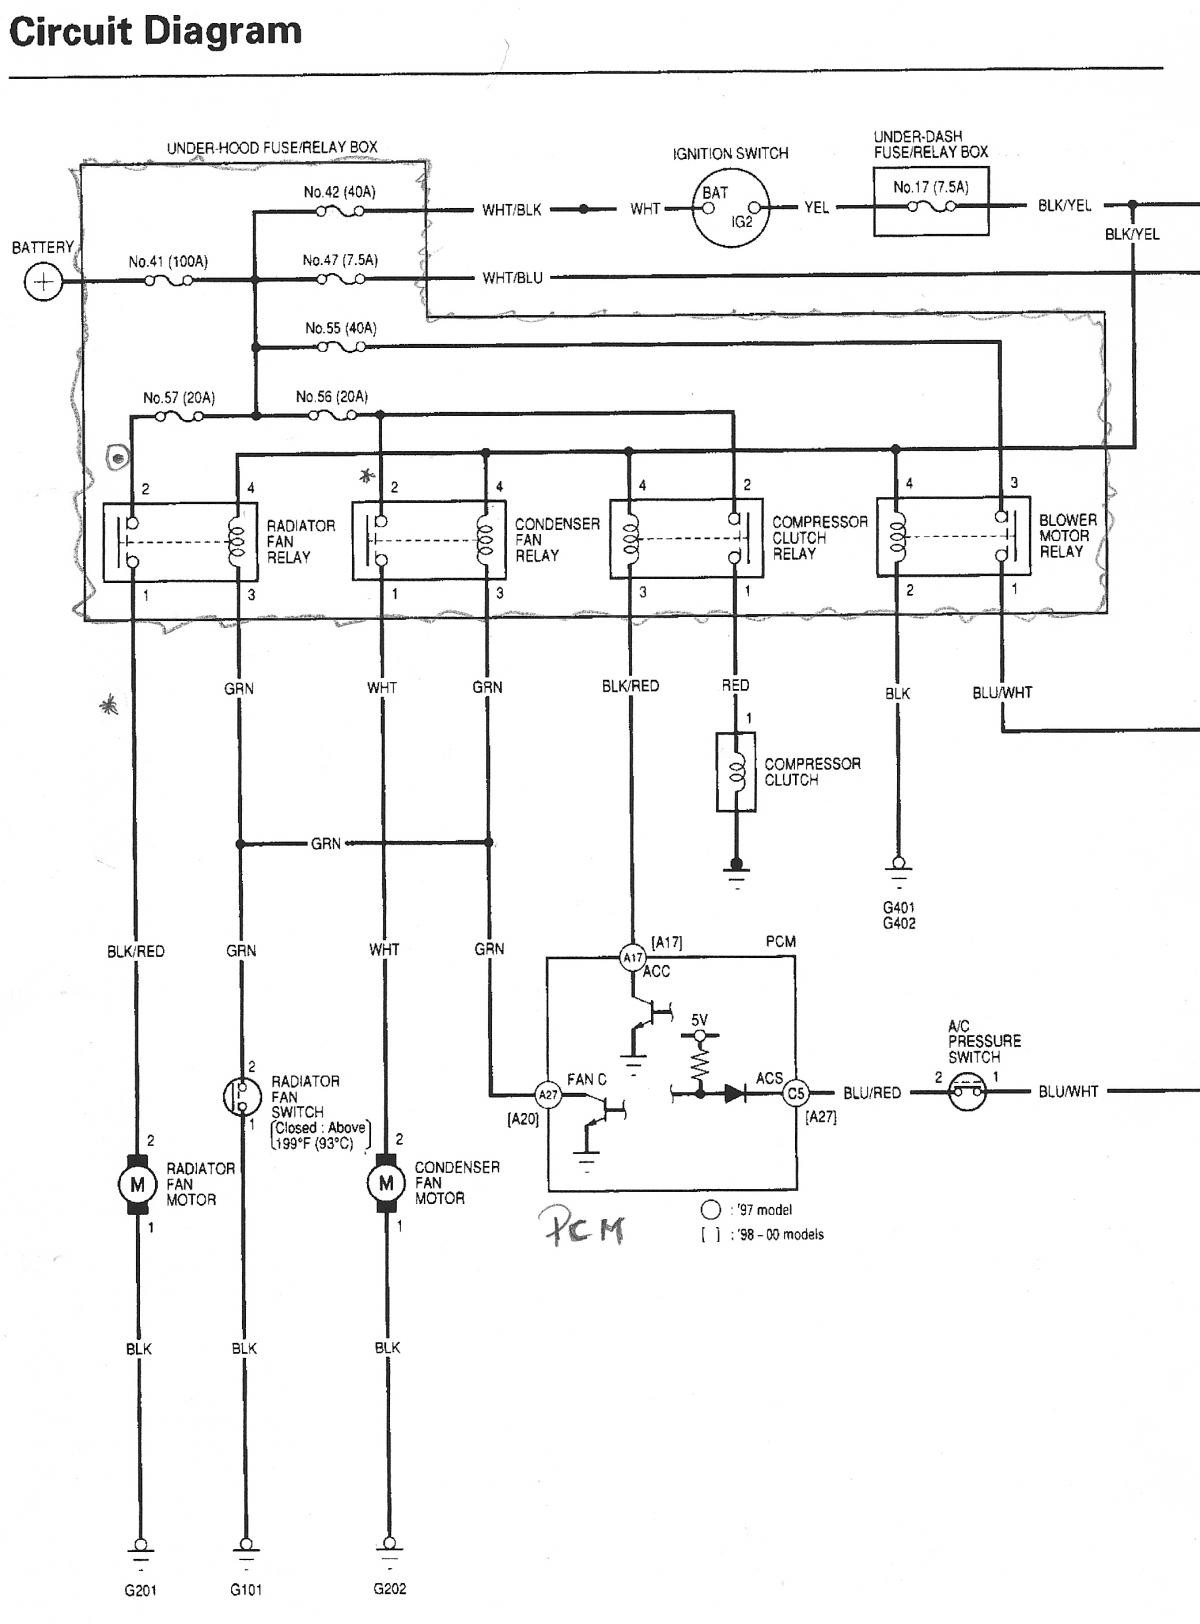 1997 Honda Accord Blower Motor Wiring Diagram Trusted For 1994 Ex Element Engine My Diagrams